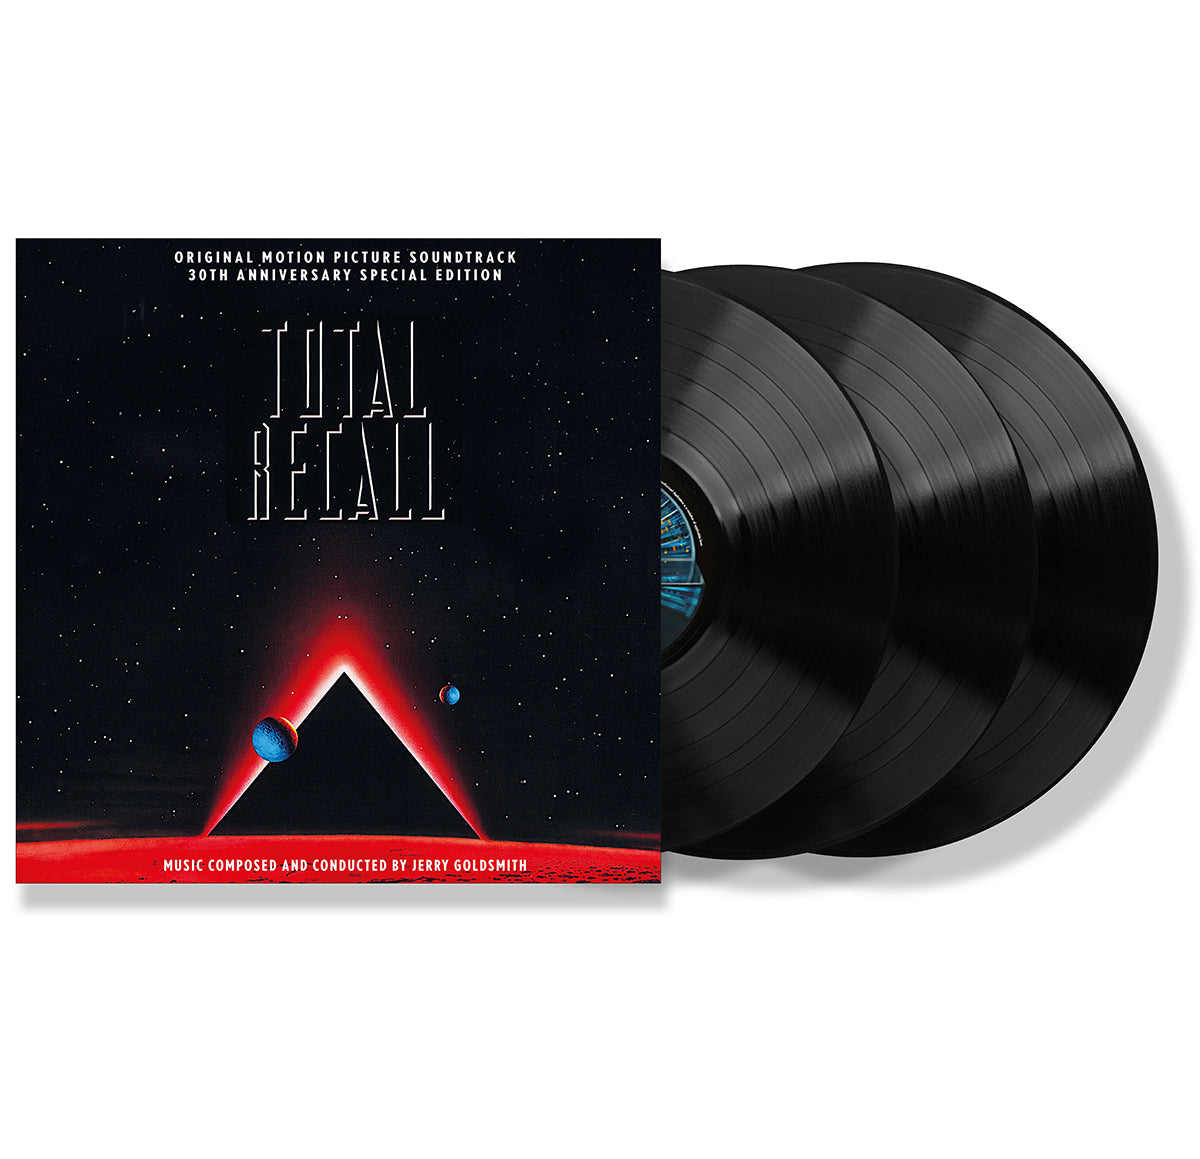 Total Recall - 3 x LP Expanded Score - Limited 1000 Copies - Jerry Goldsmith